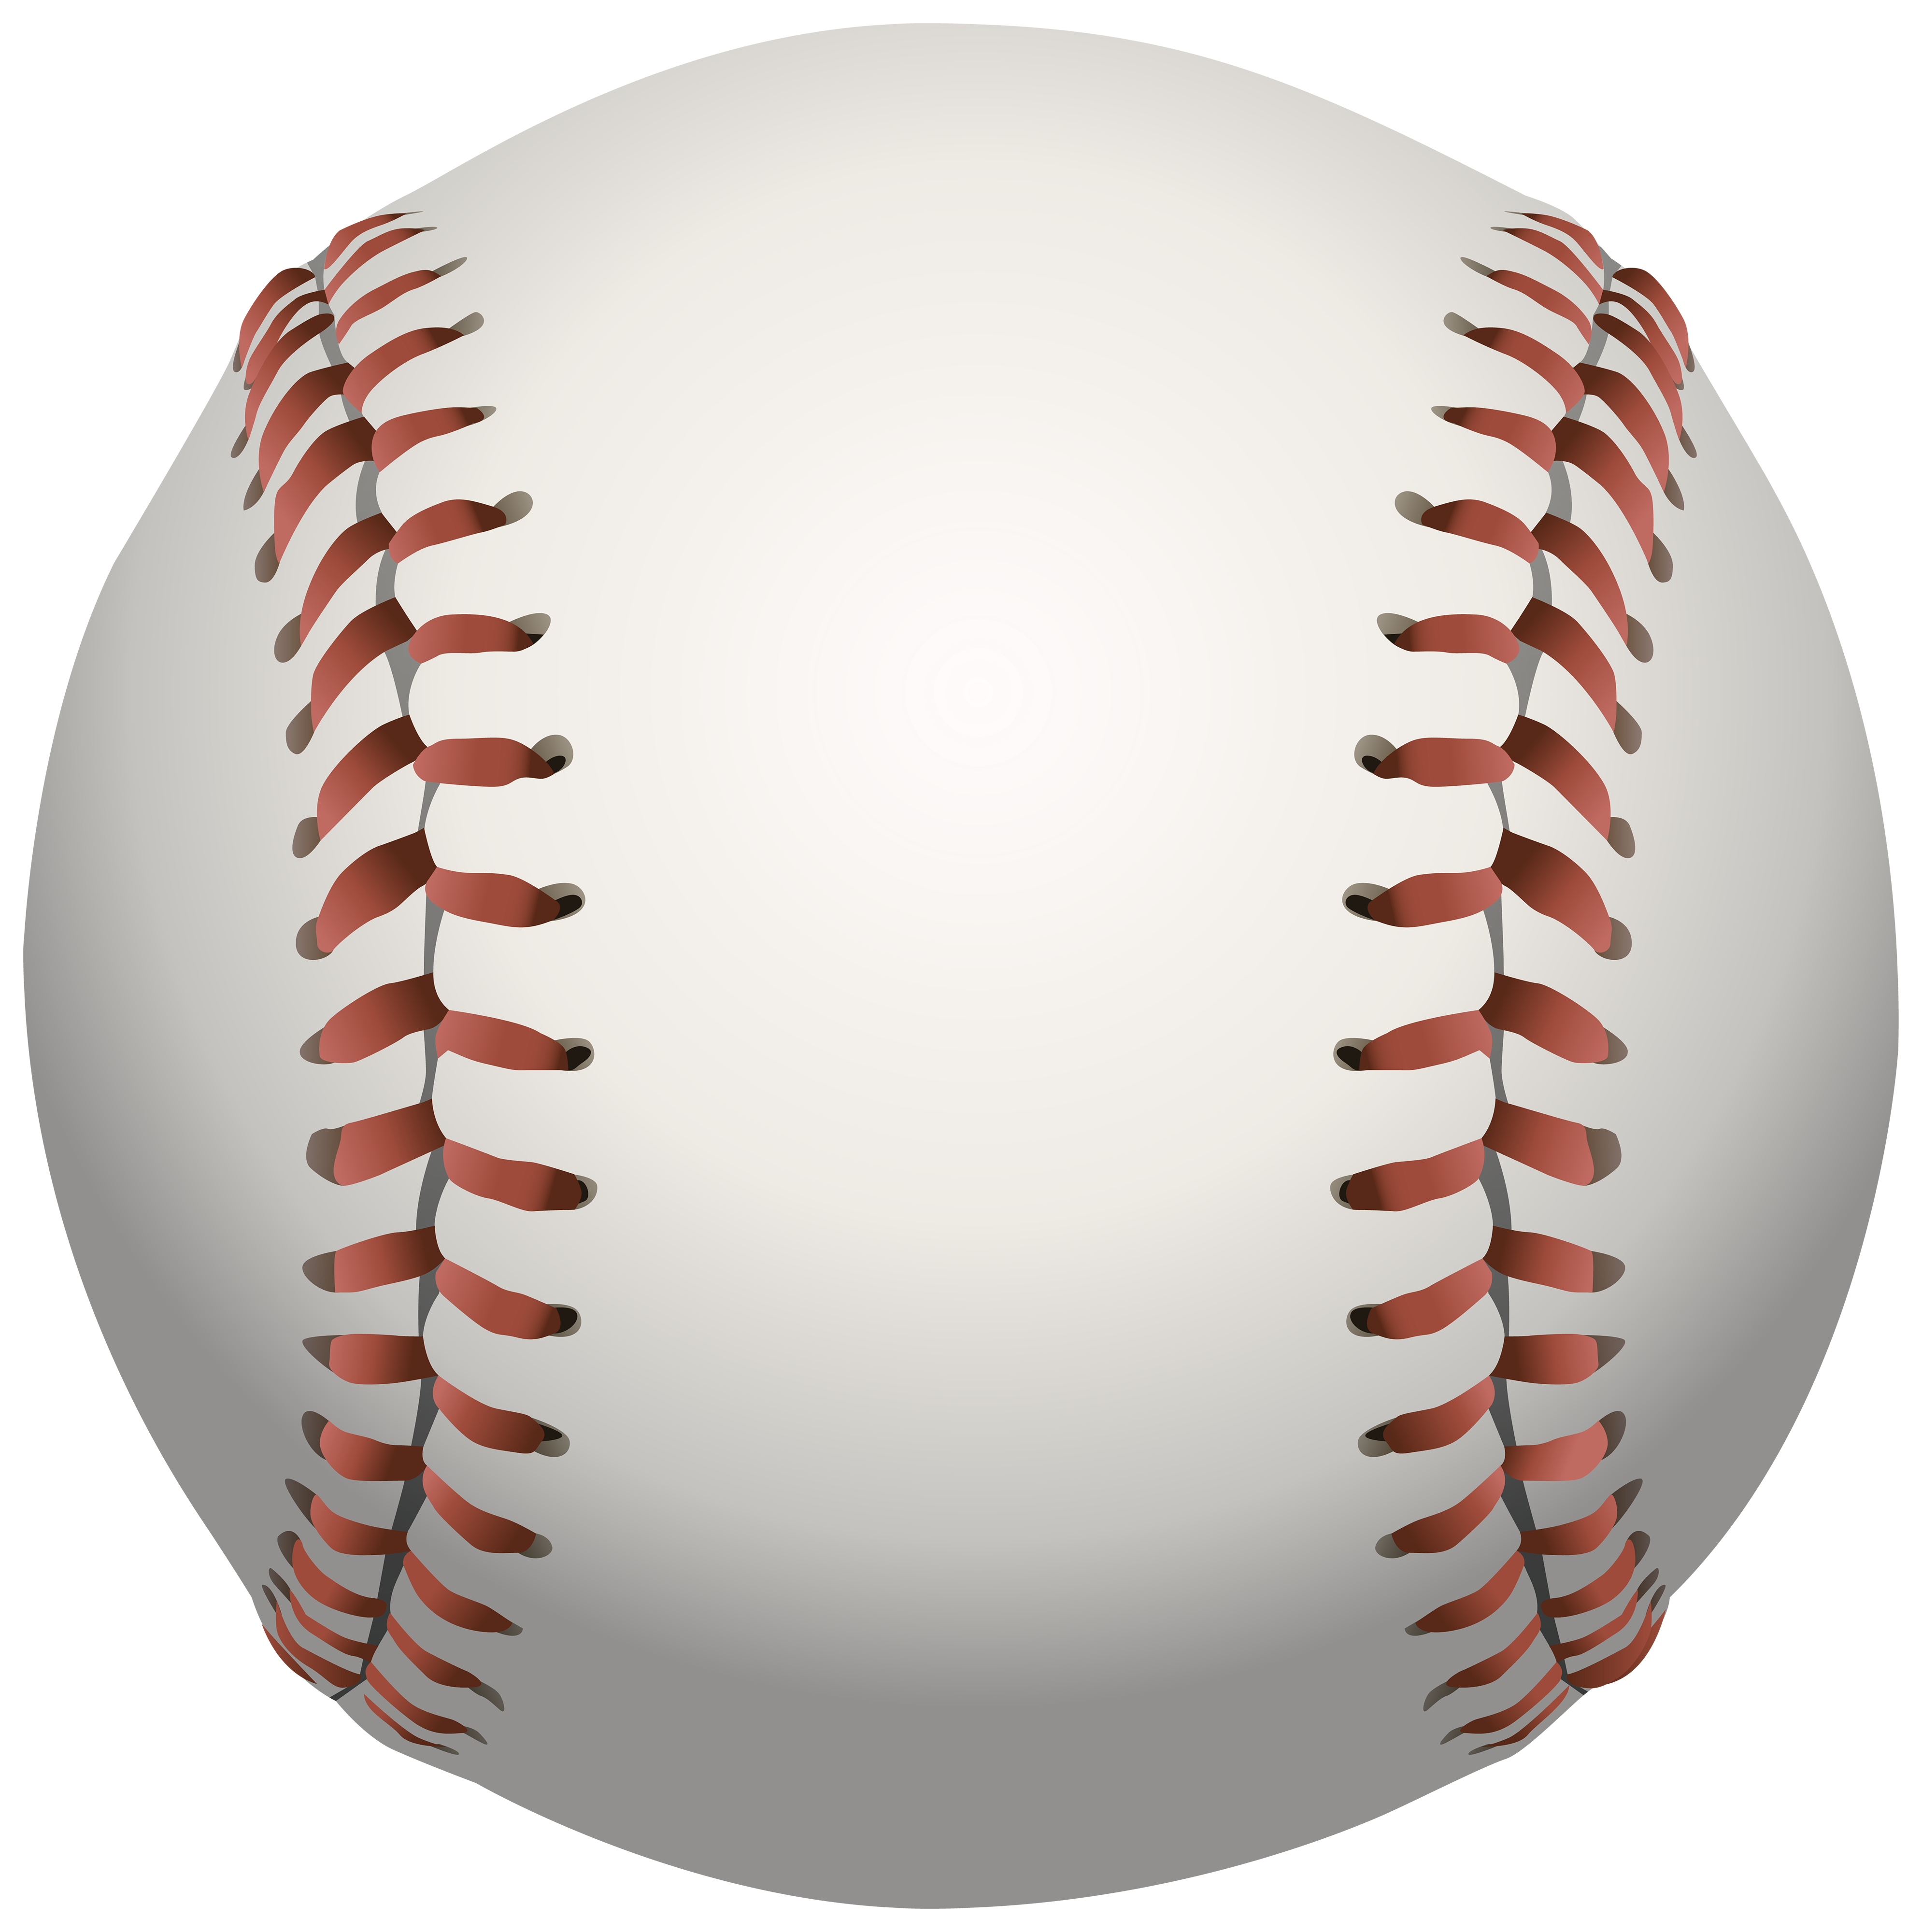 Baseball and ball clipart vector royalty free download Baseball Ball PNG Clipart - Best WEB Clipart vector royalty free download